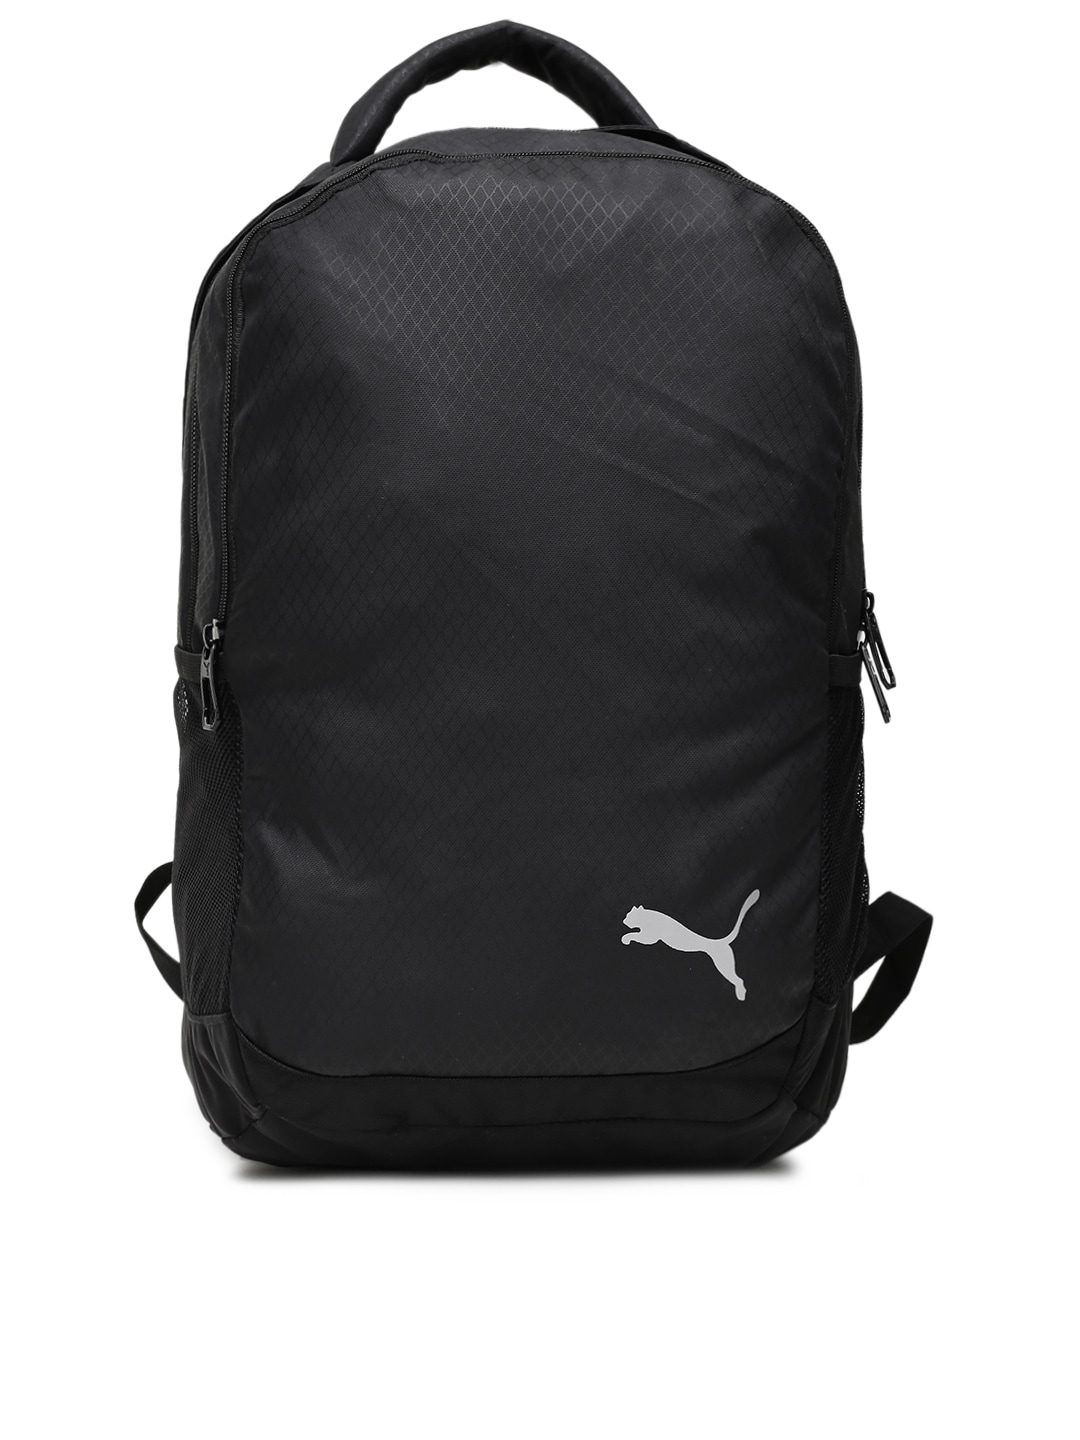 d7a0b3465f03 Buy Puma Unisex Black Arsenal Football Backpack - Backpacks for ...